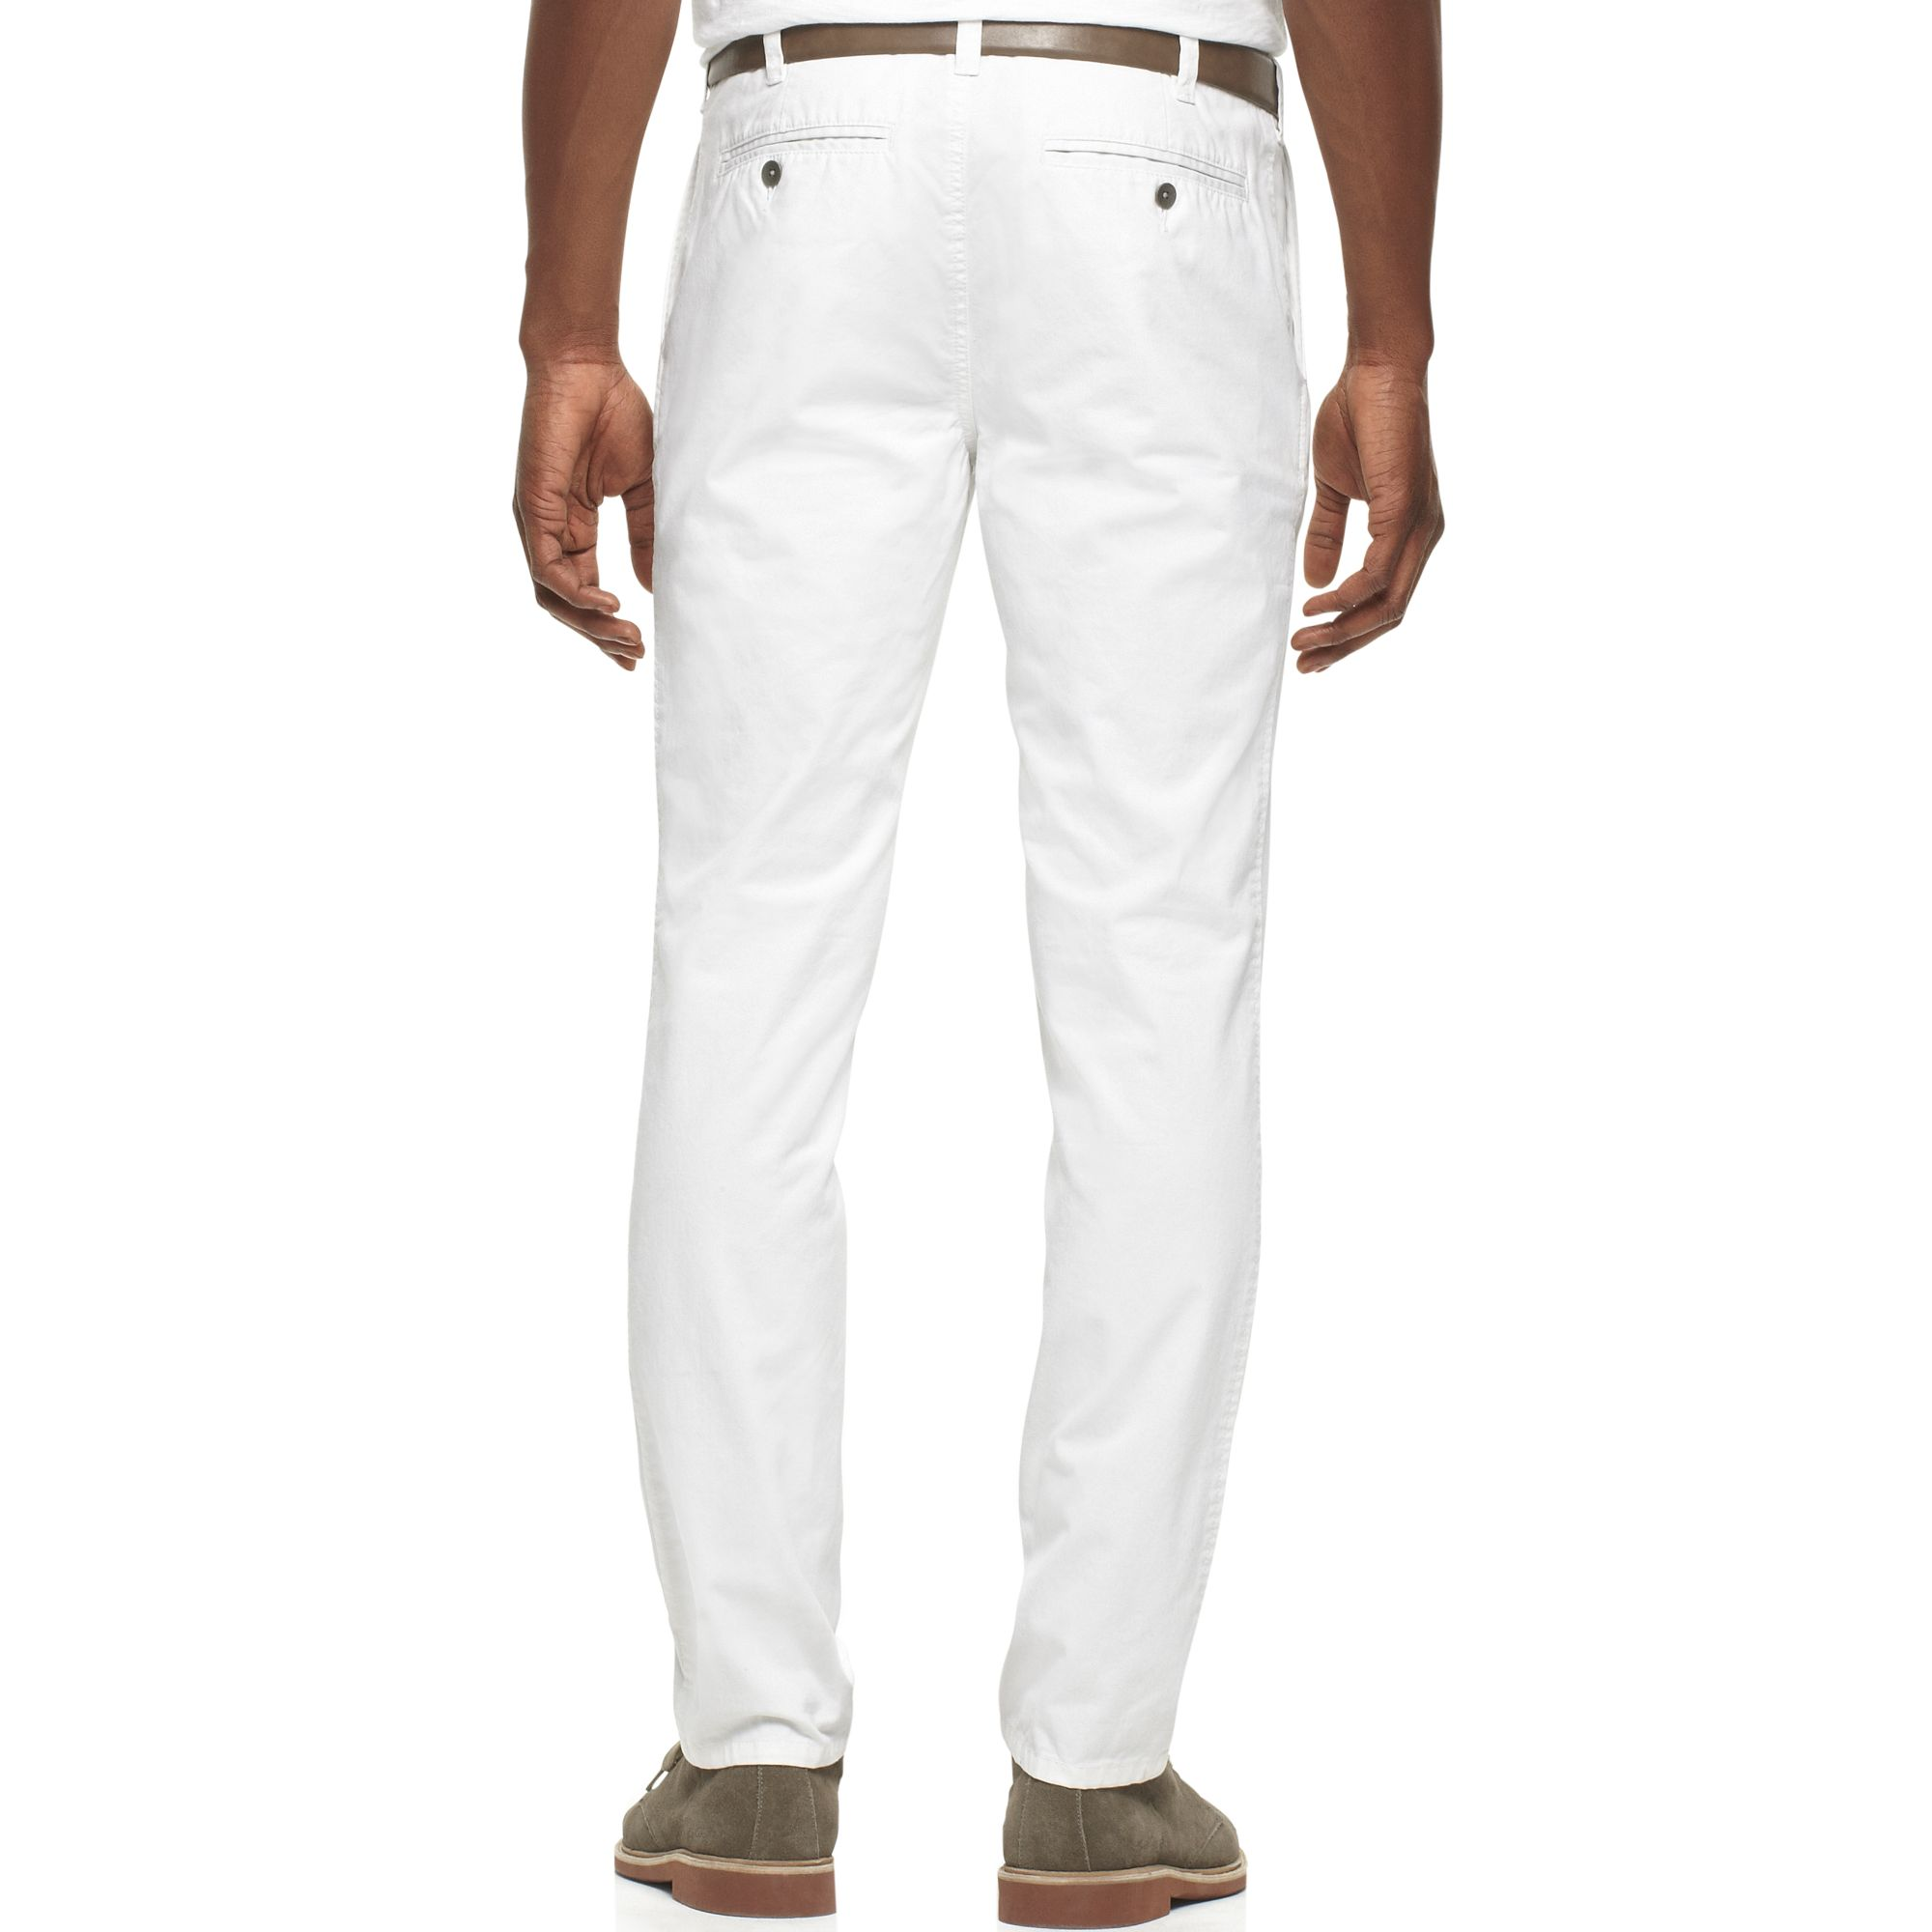 kenneth cole reaction slim fit chino pants in white for men lyst. Black Bedroom Furniture Sets. Home Design Ideas